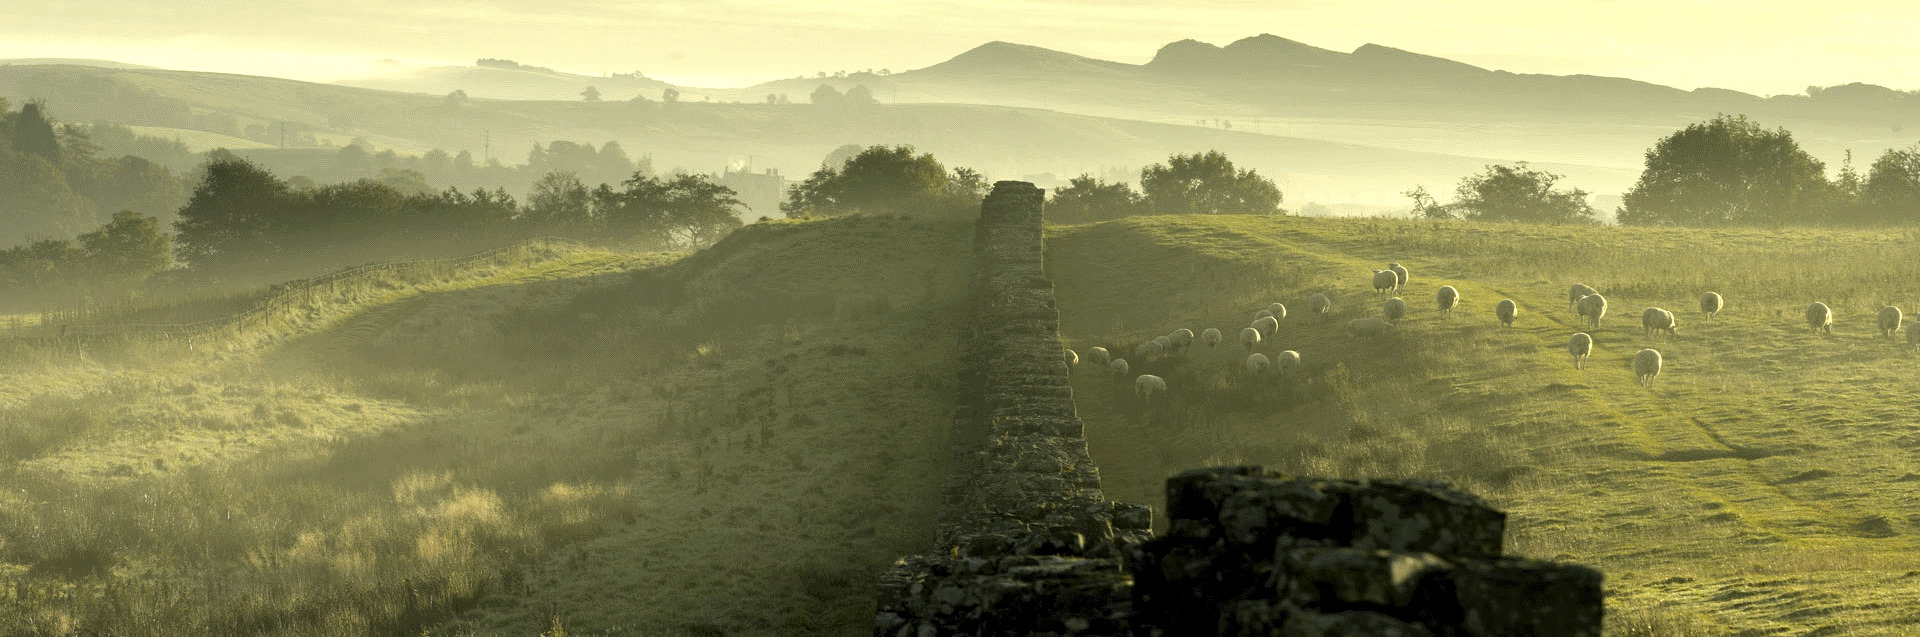 Hadrian's Wall in Cumbria